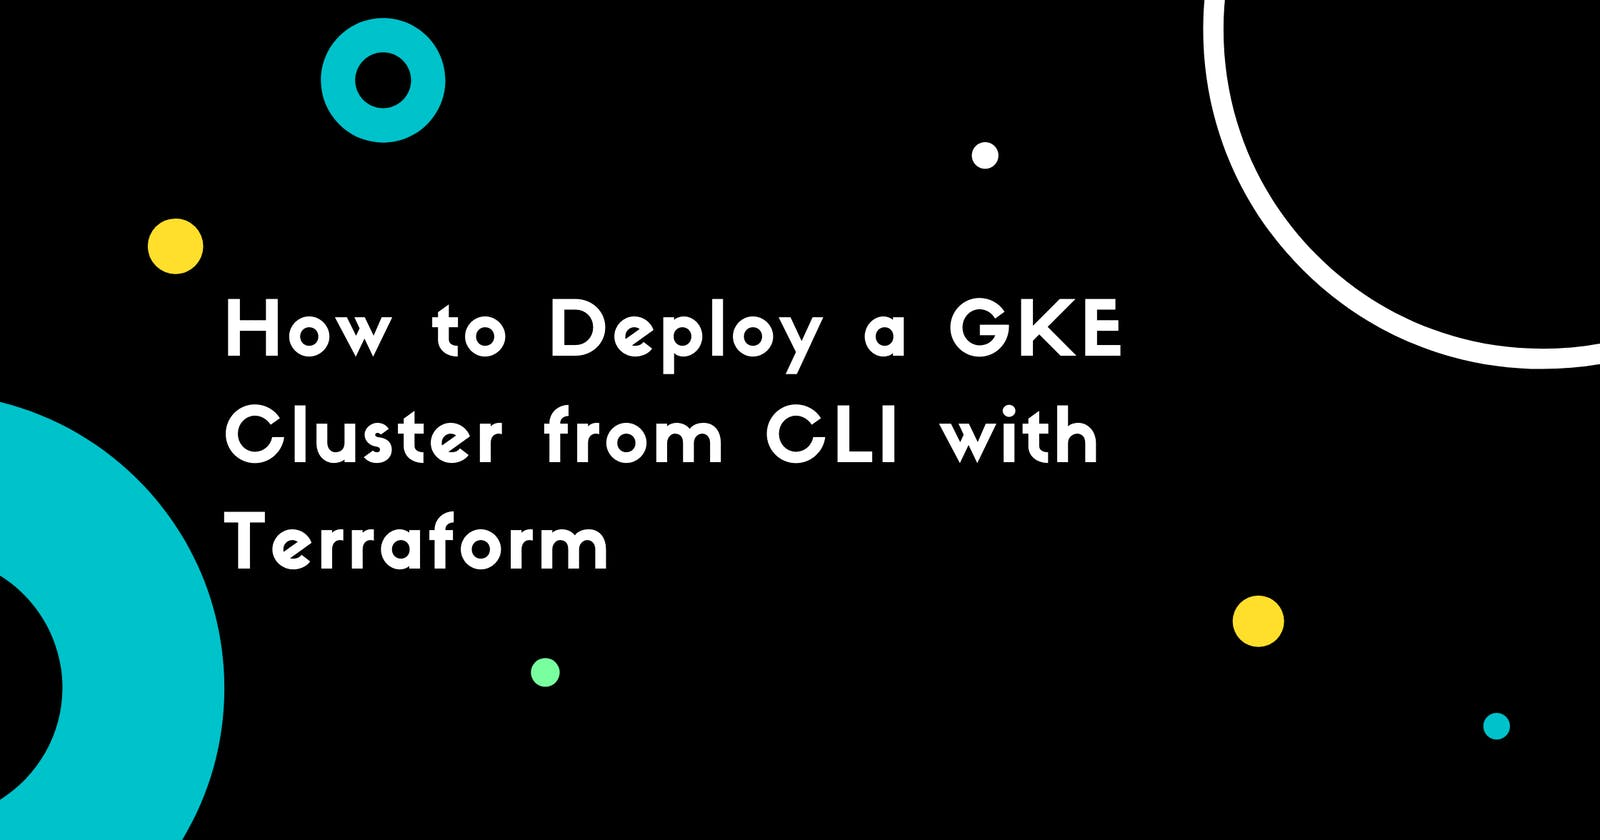 How to Deploy a GKE Cluster from CLI with Terraform